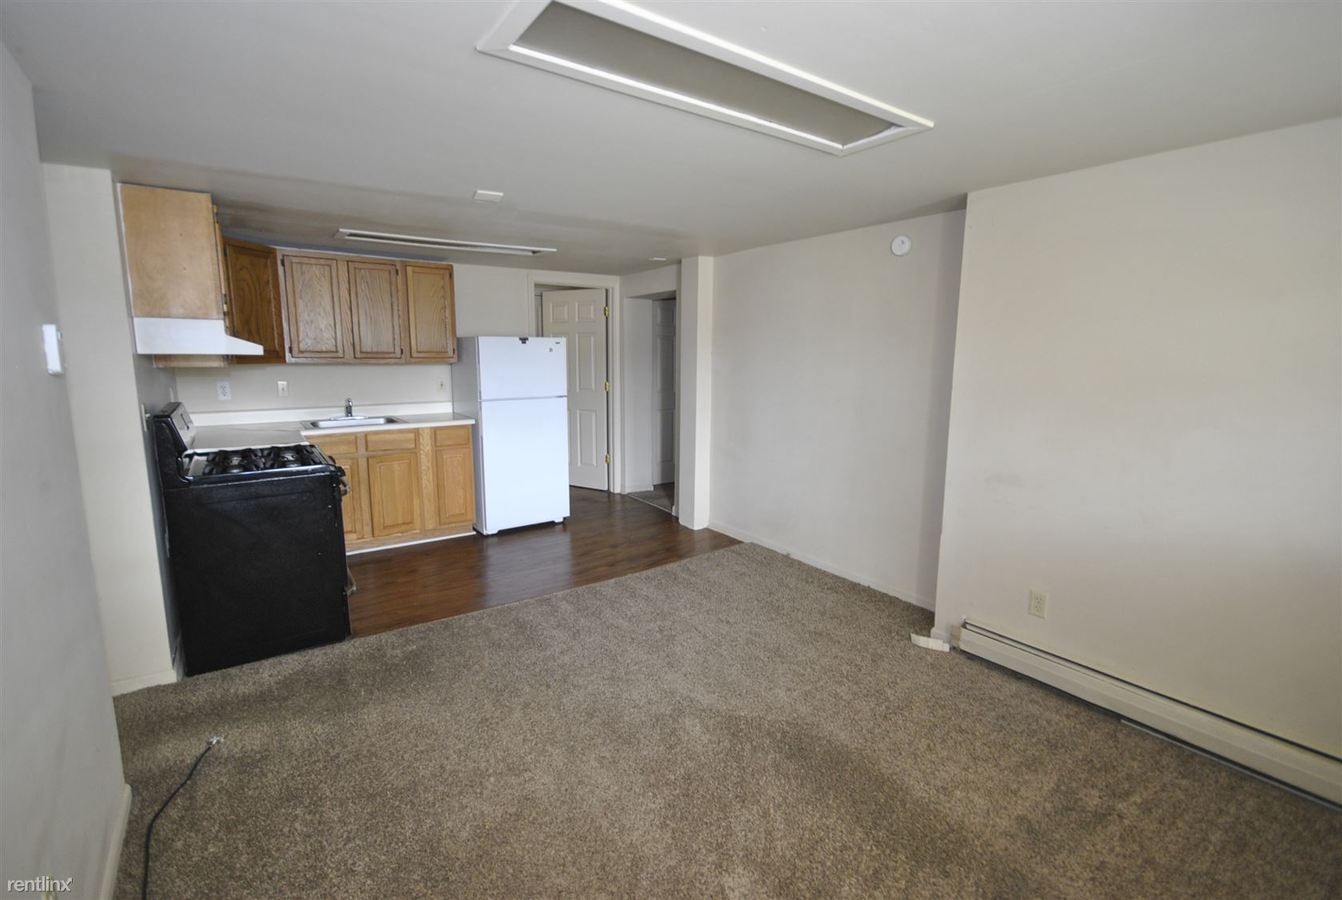 2 Bedrooms 1 Bathroom Apartment for rent at 558 S 5th Ave in Ann Arbor, MI